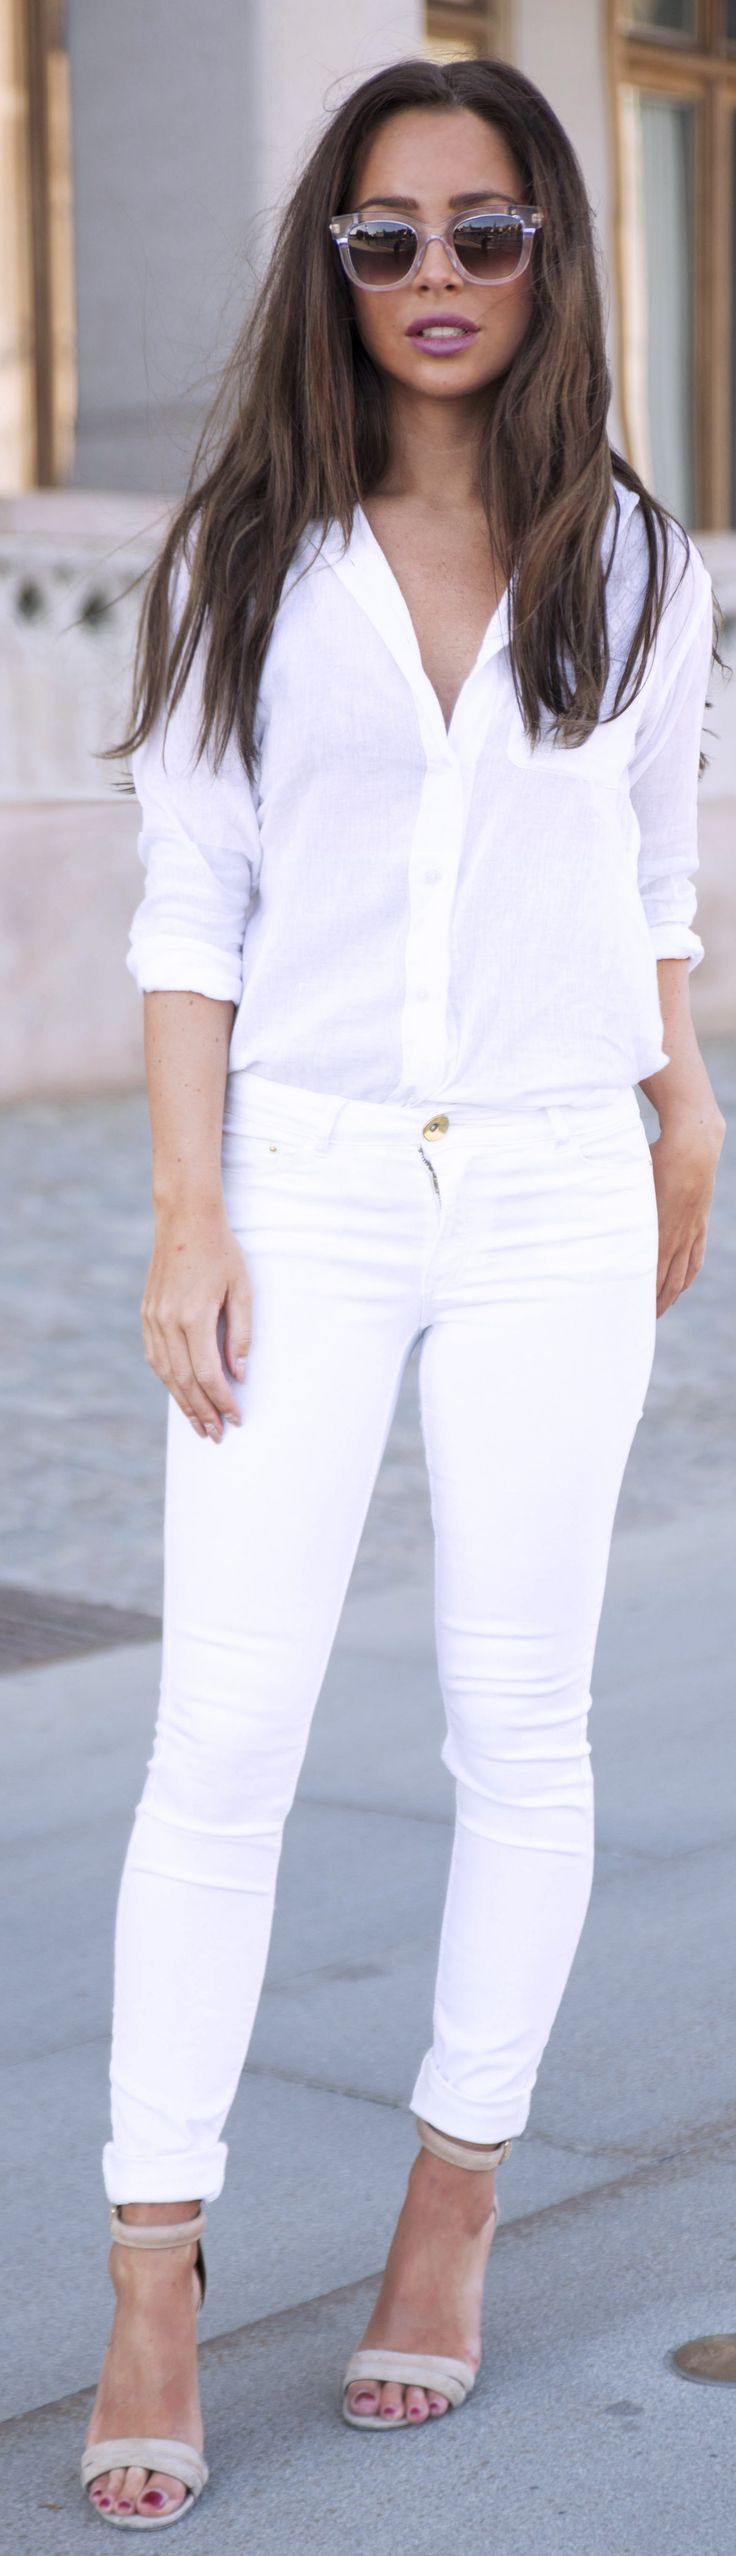 Denim And Supply White Womenu0026#39;s Summer Button Up | Threads | Pinterest | All White Denim And ...